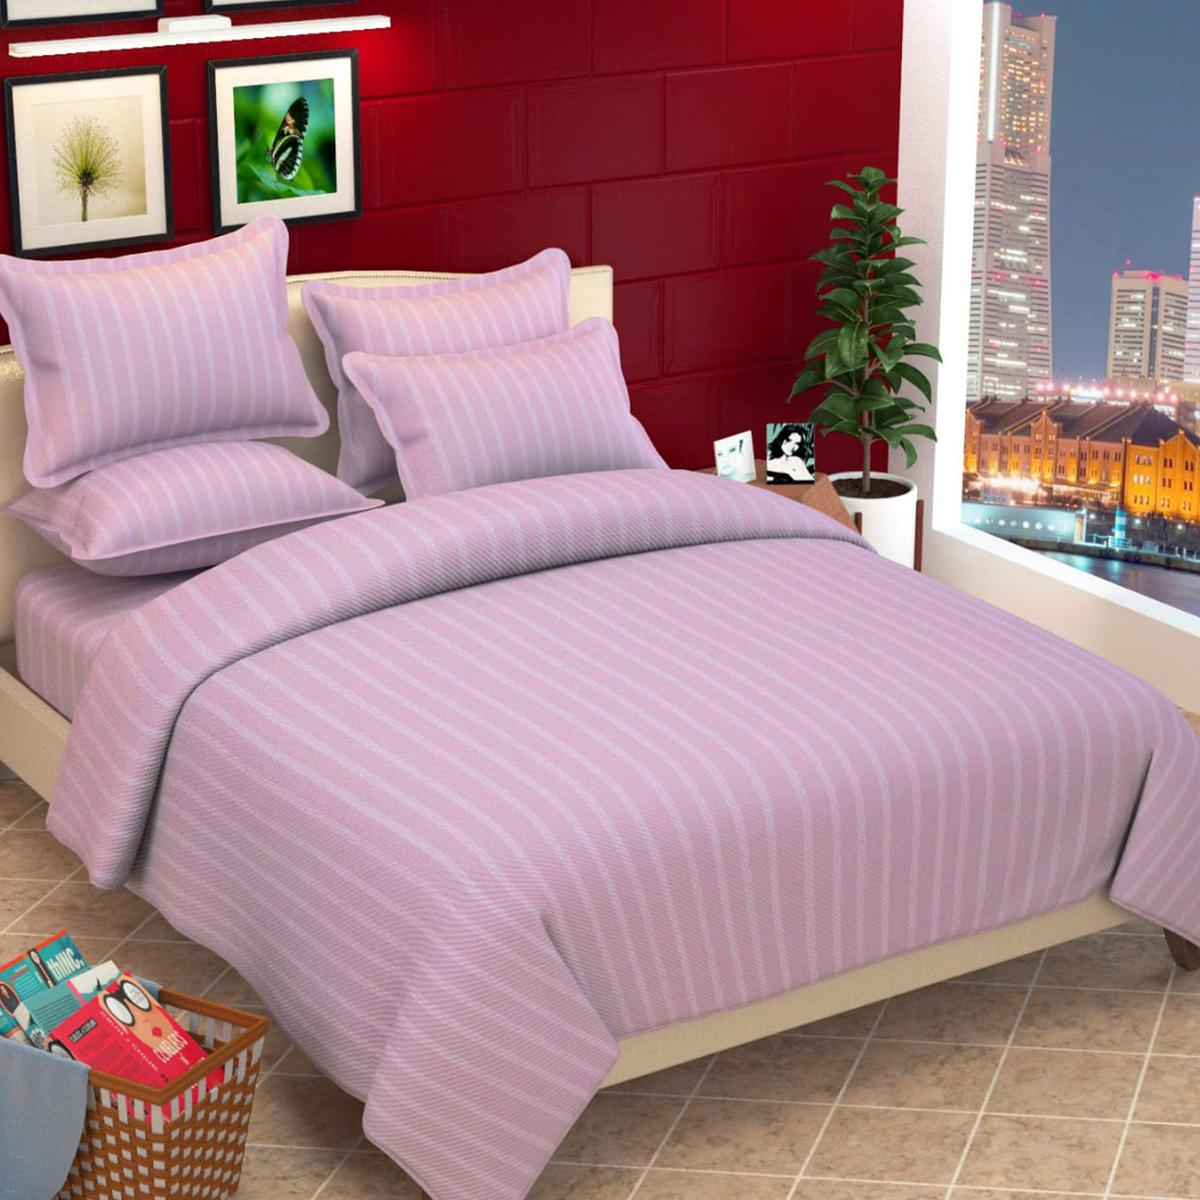 Adirav - Purple Colored Striped King Size Pure Cotton Bedsheet With 2 Pillow Cover